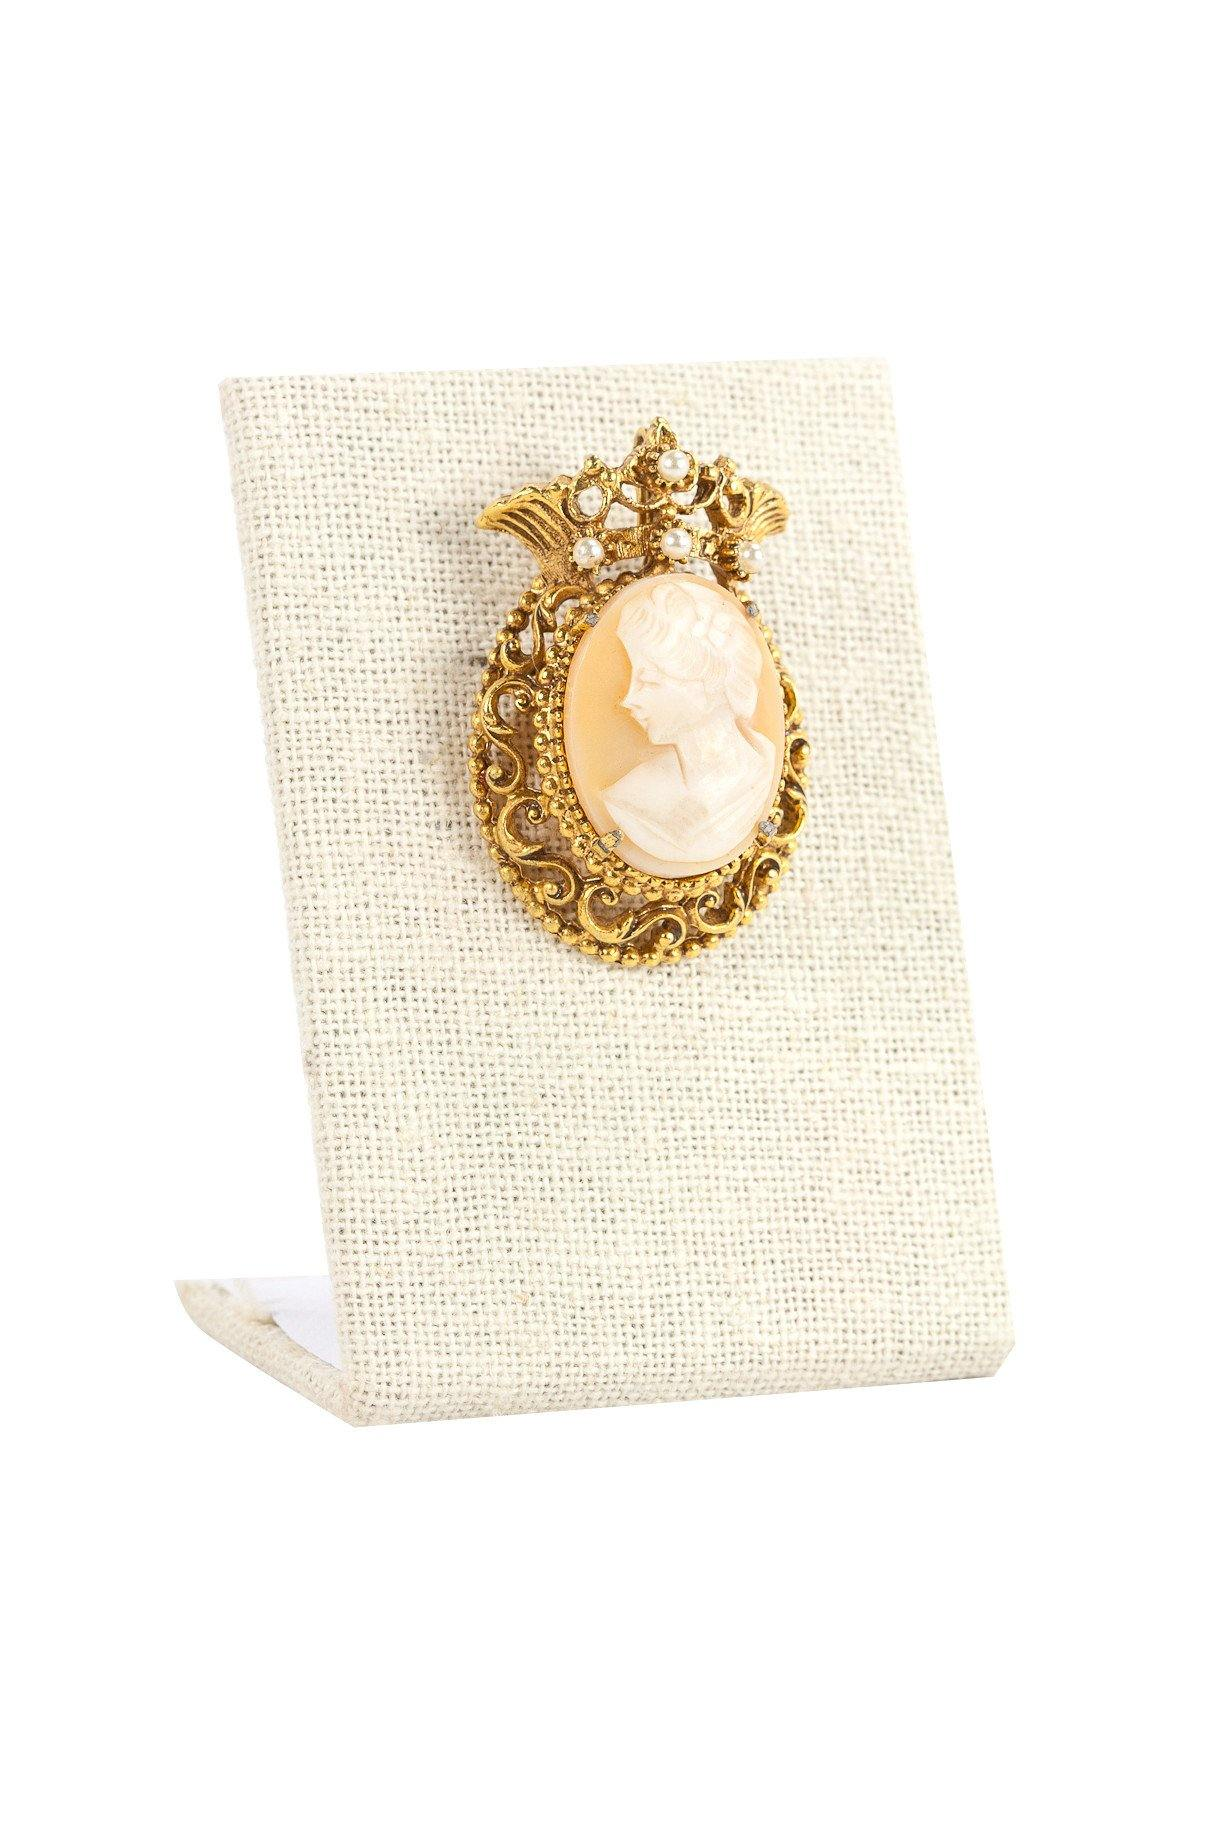 50's__Florenza__Pearl Embellished Statement Brooch